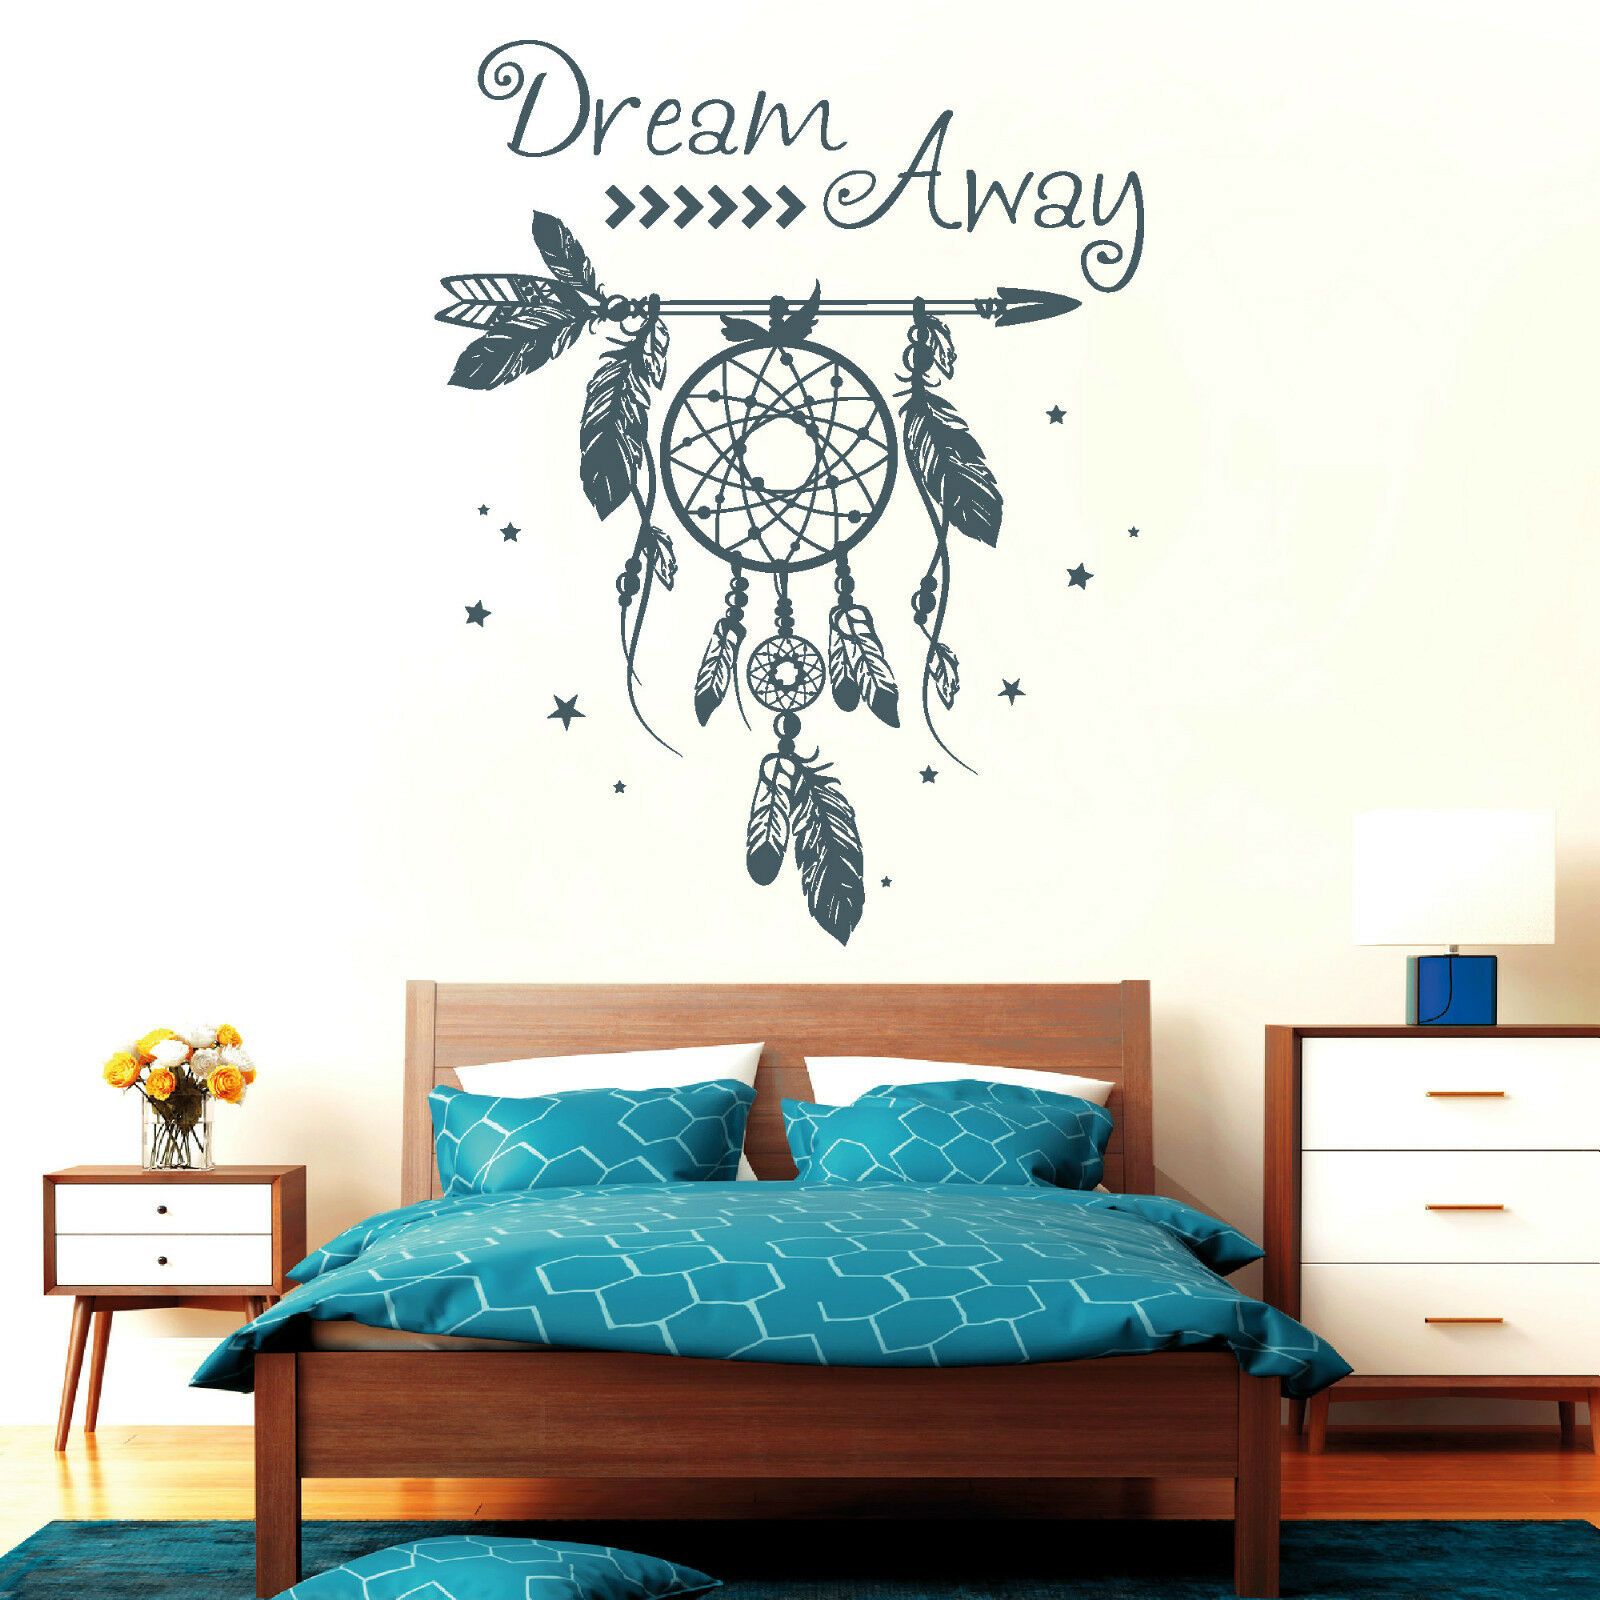 10812 wandtattoo loft aufkleber traumf nger dreamcatcher. Black Bedroom Furniture Sets. Home Design Ideas